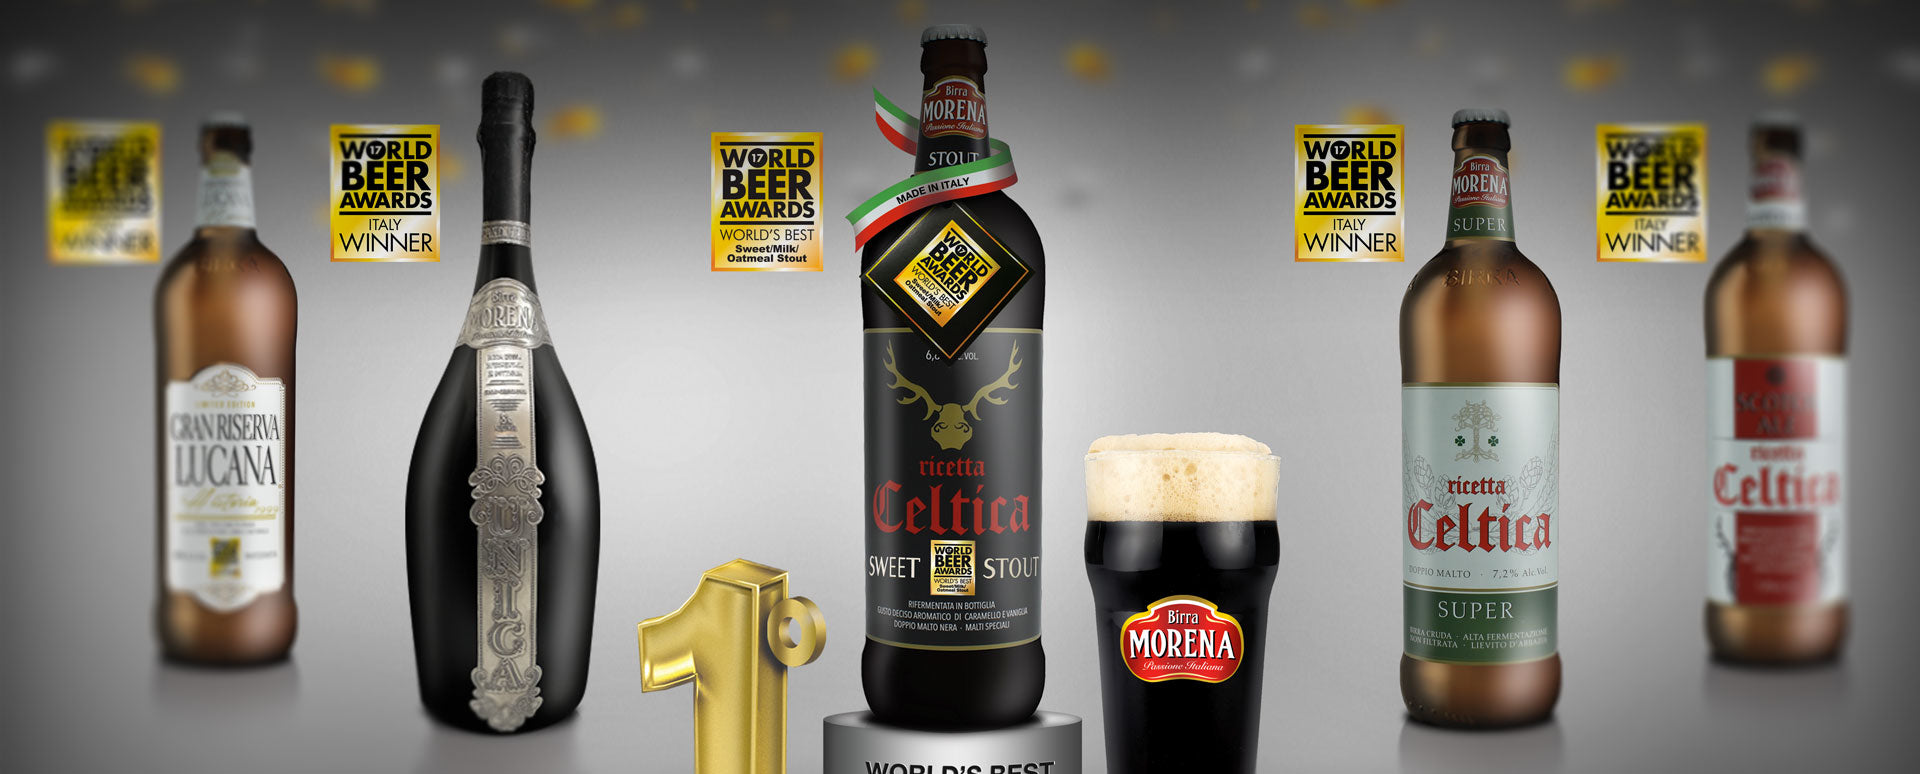 Birra Morena Celtica Super 7.2 % - AWARDED